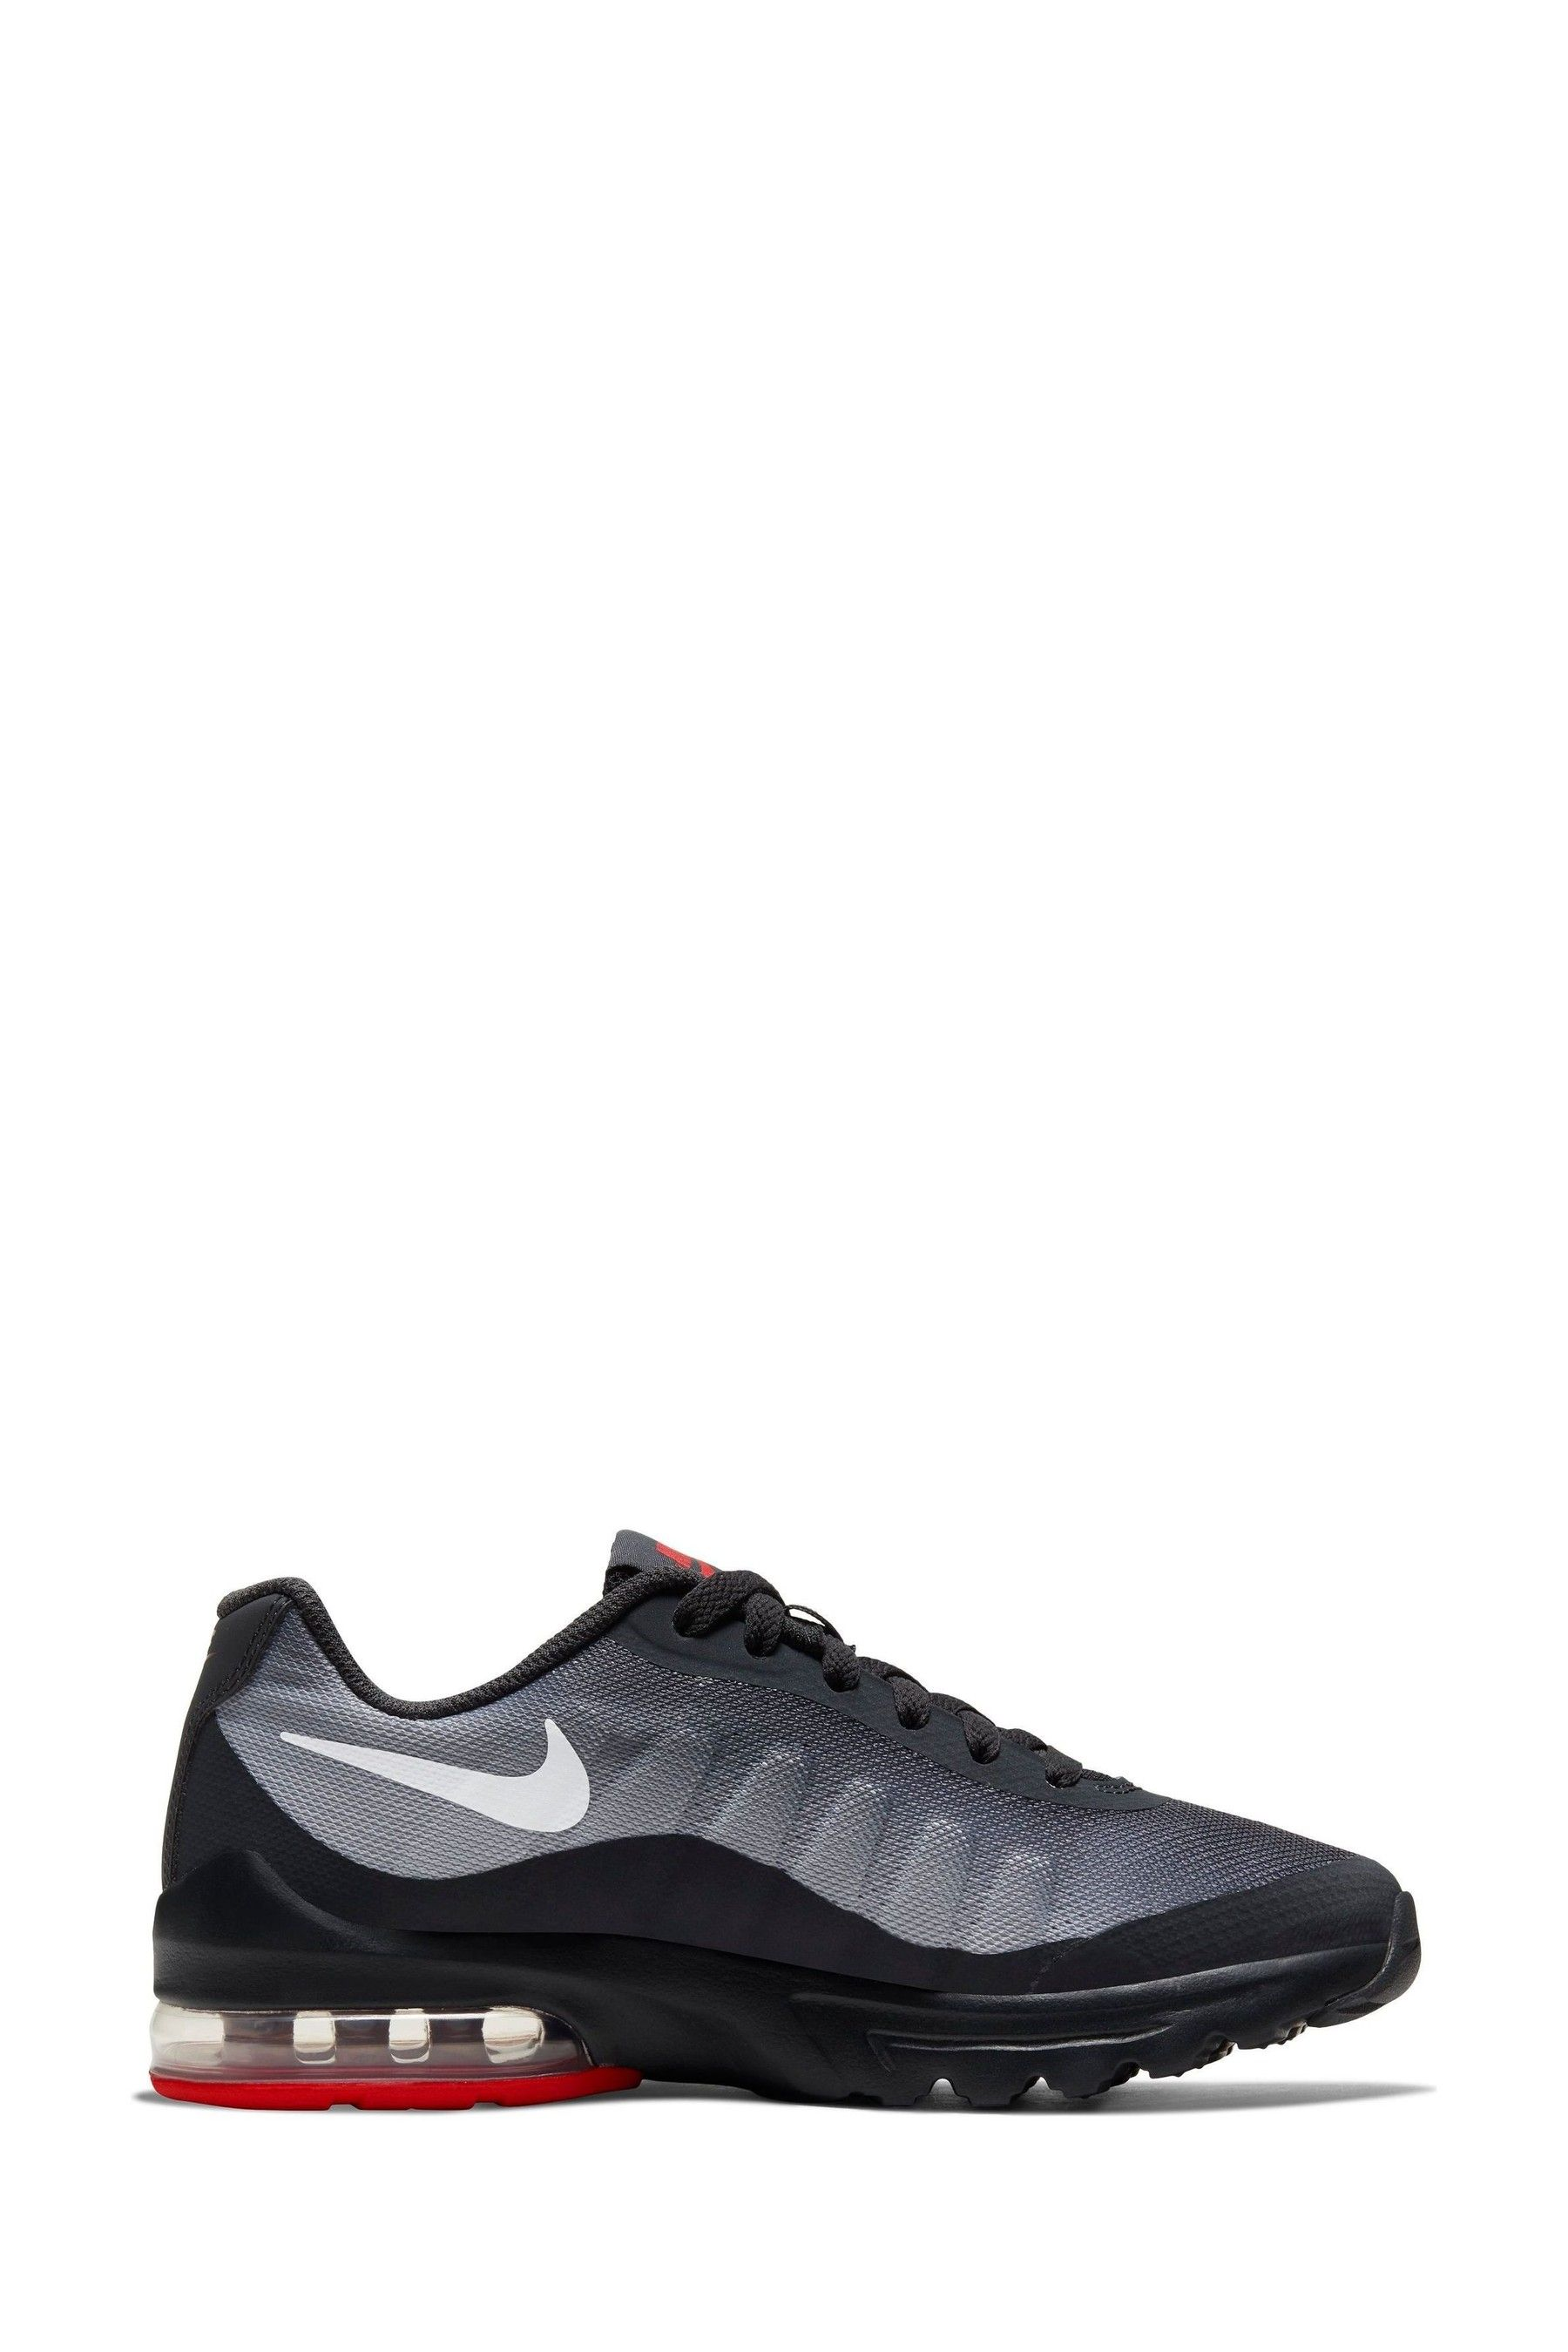 Boys Nike BlackWhite Air Max Invigor Youth Trainers Black